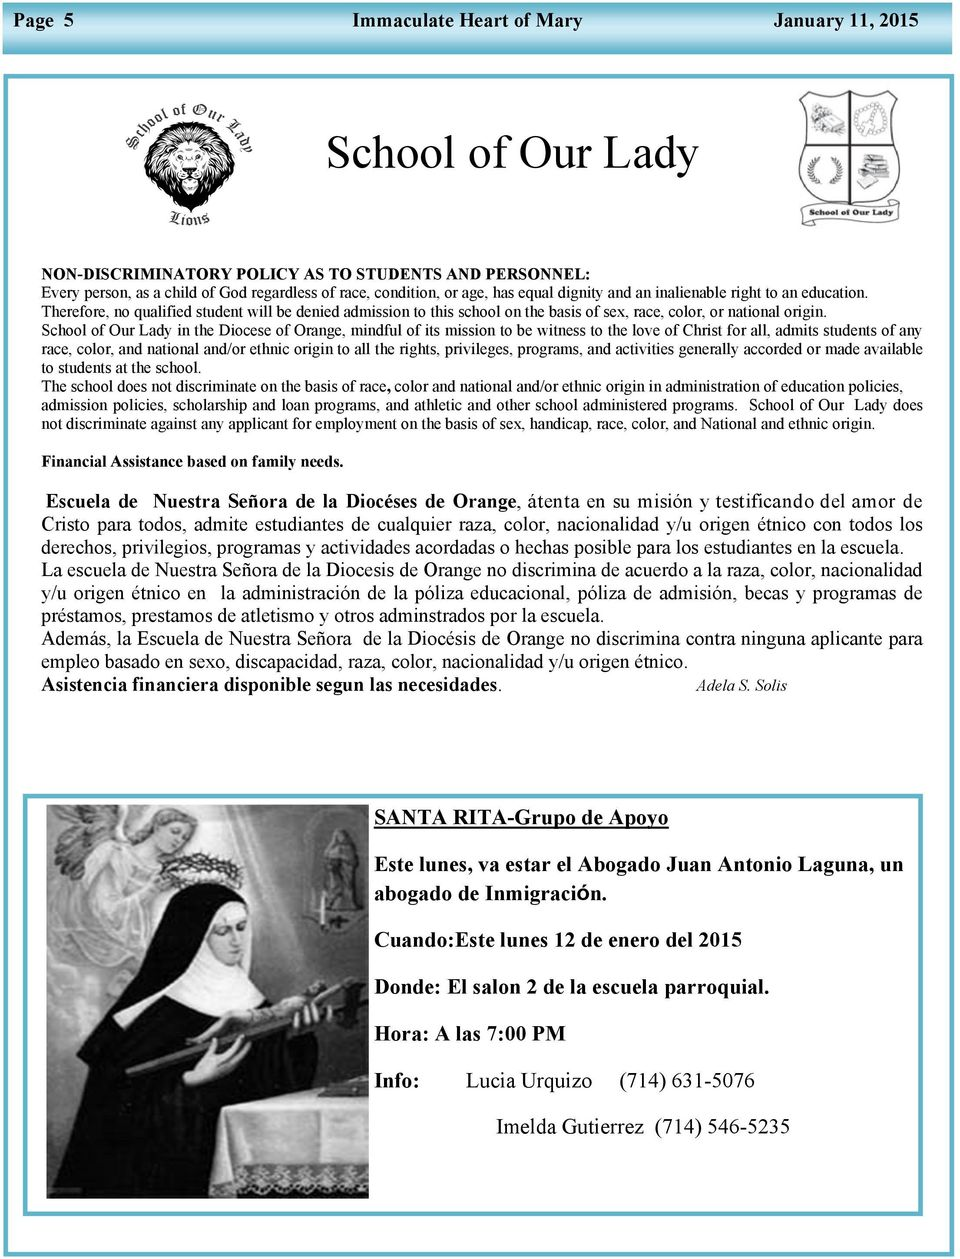 School of Our Lady in the Diocese of Orange, mindful of its mission to be witness to the love of Christ for all, admits students of any race, color, and national and/or ethnic origin to all the